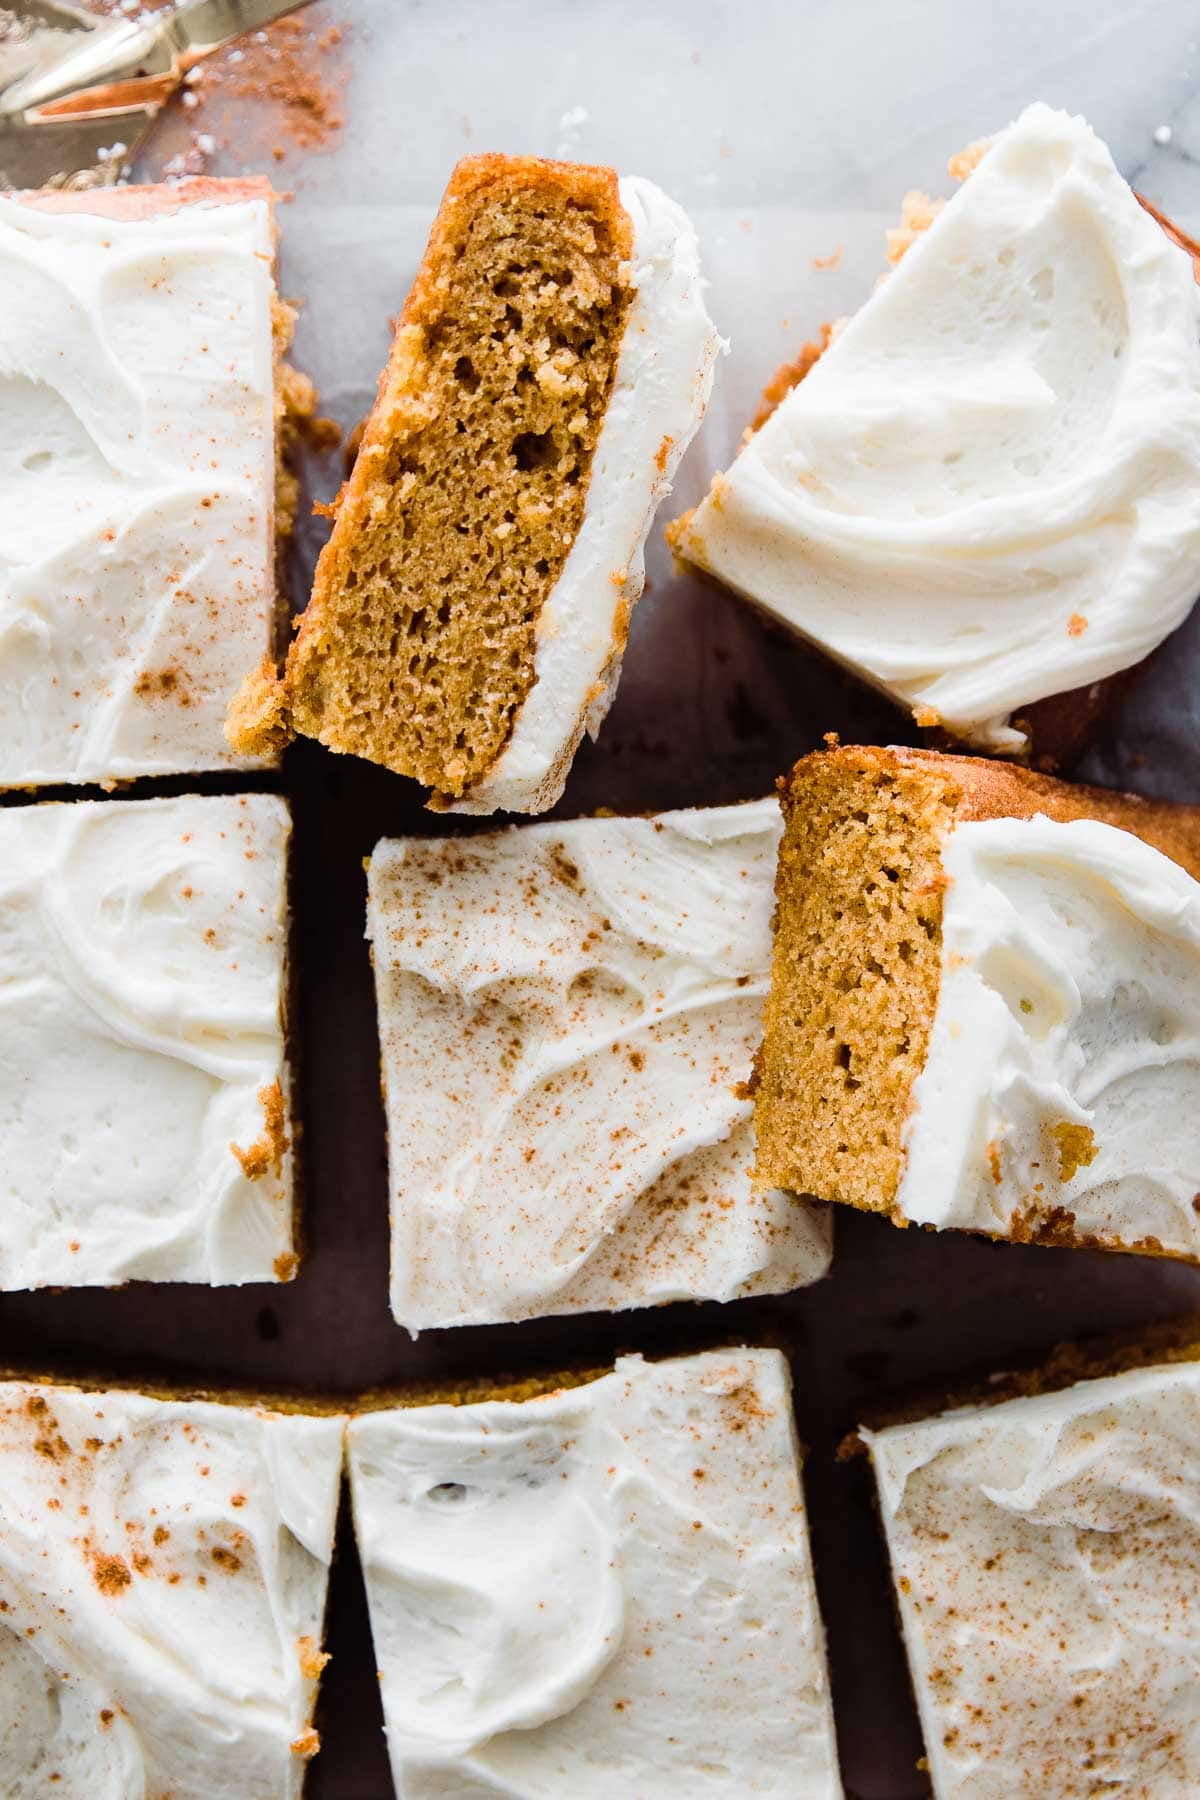 slices of frosted pumpkin cake hap hazardly placed